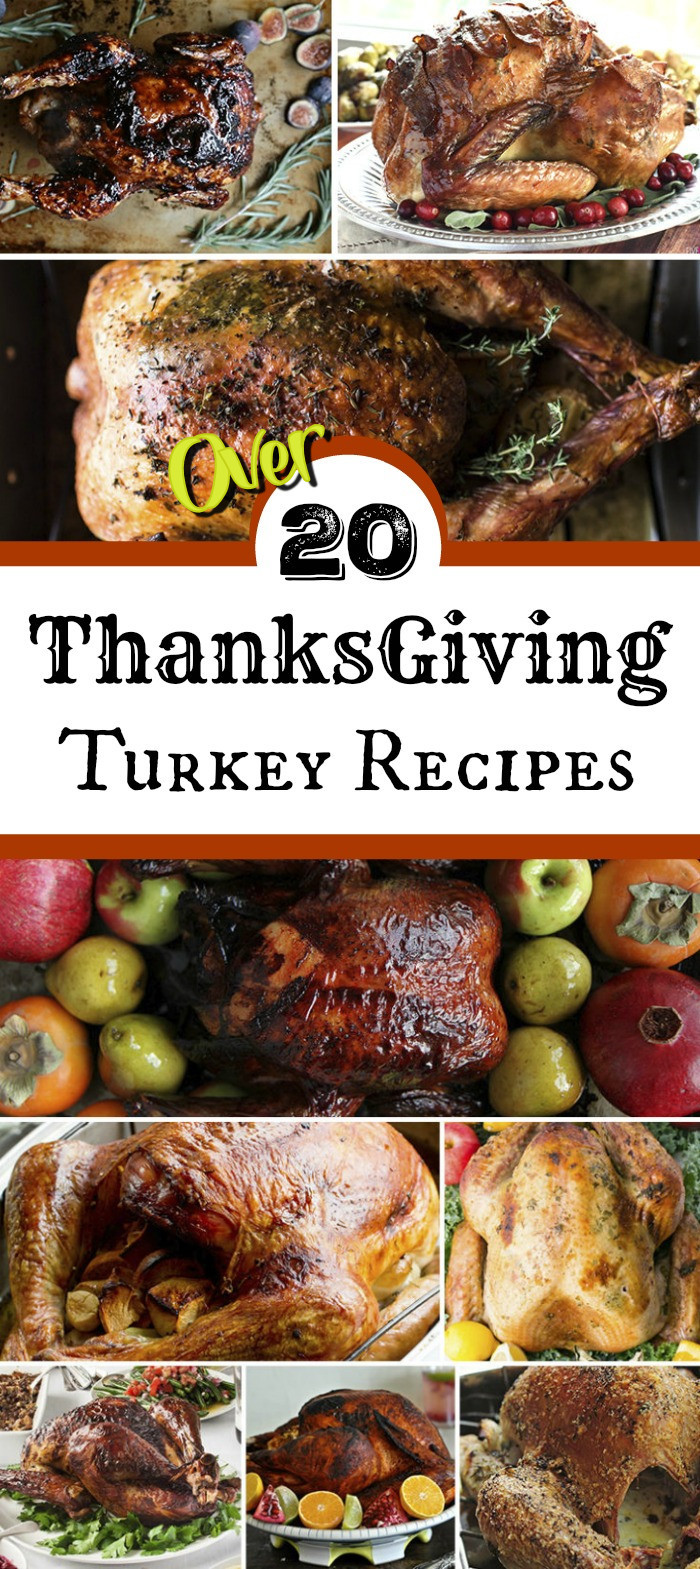 Turkey Recipes Thanksgiving  Thanksgiving Turkey Recipes for the Best Thanksgiving